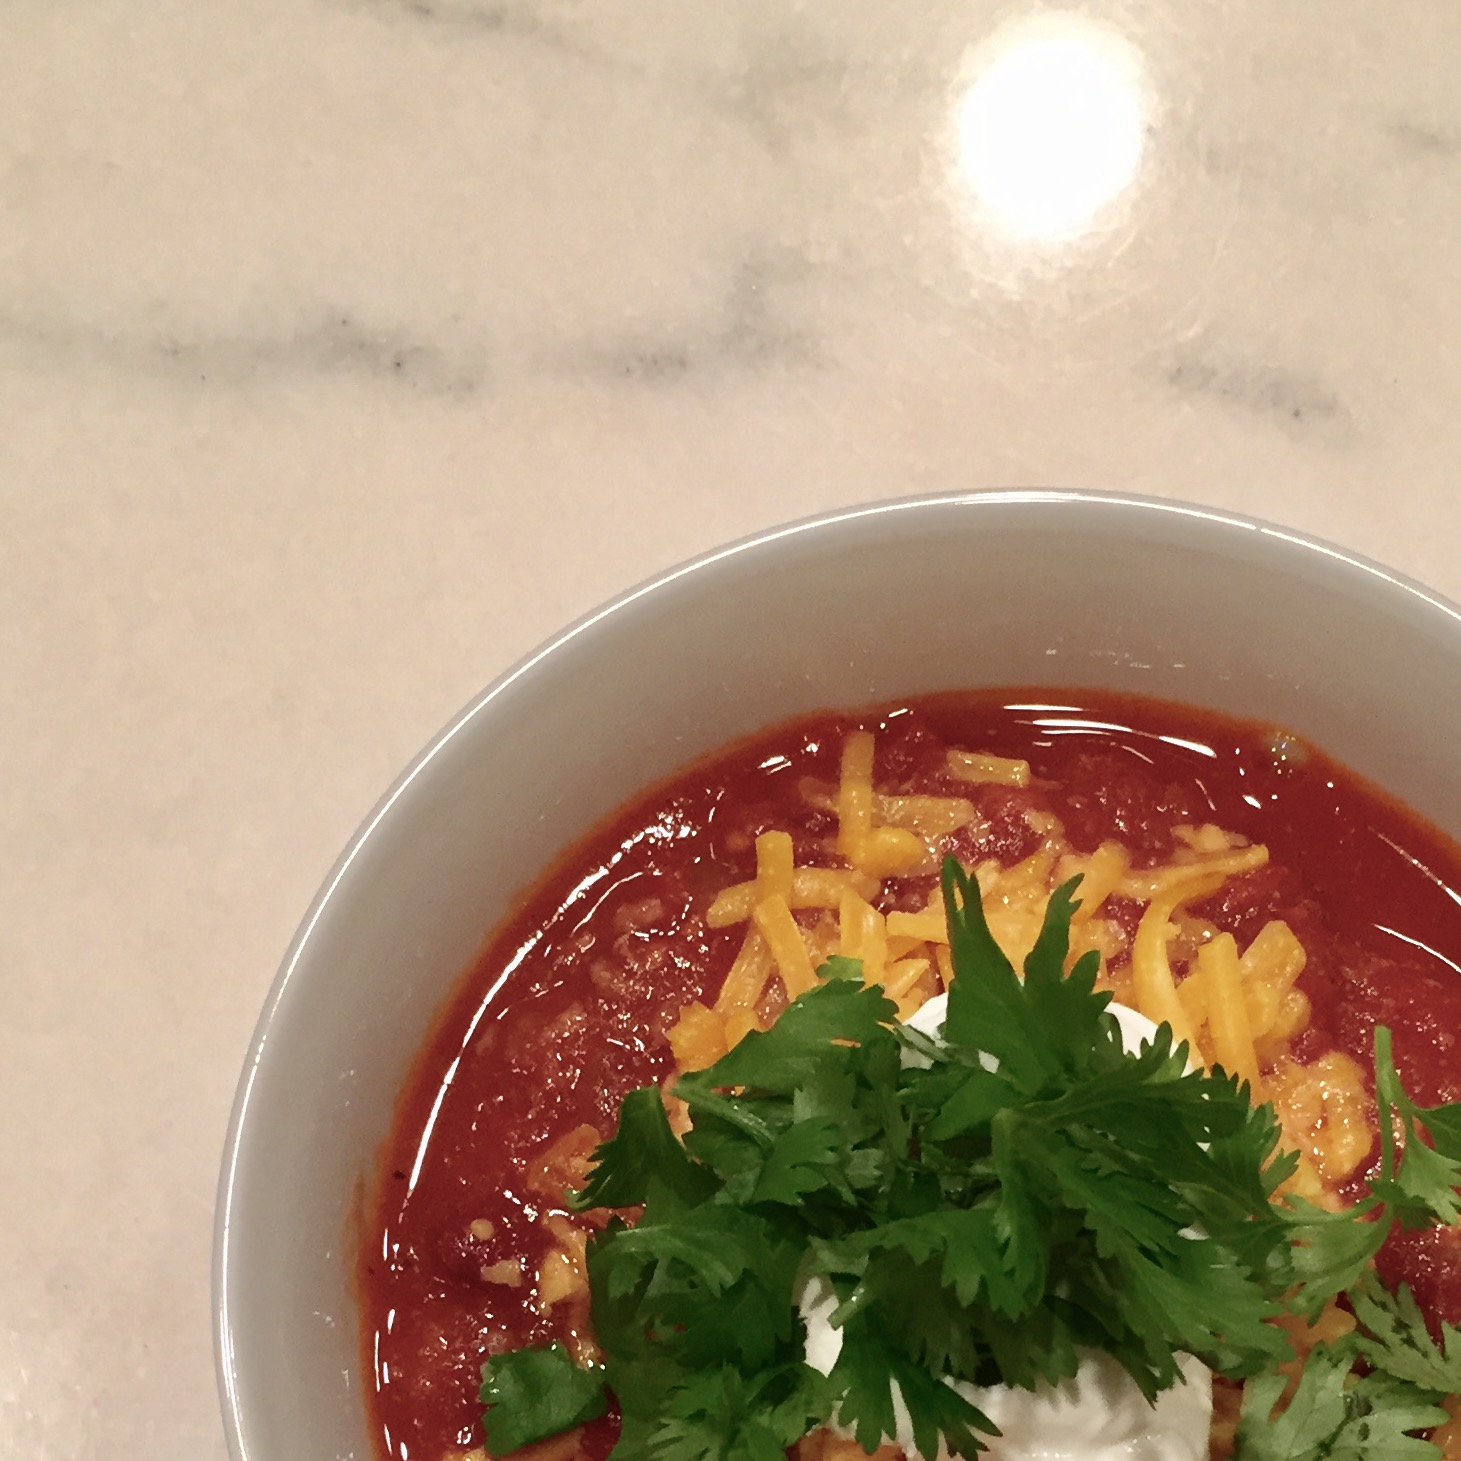 Quick & Easy Week Night Dinner - Venison Chili, Casey Bonano RD, LD, Dallas Nutritional Counseling #dallasnutritionalcounseling #balancedeating #homecooking #quickrecipes #easyrecipe #weeknightrecipe #carbfatpro #quickeasyrecipe